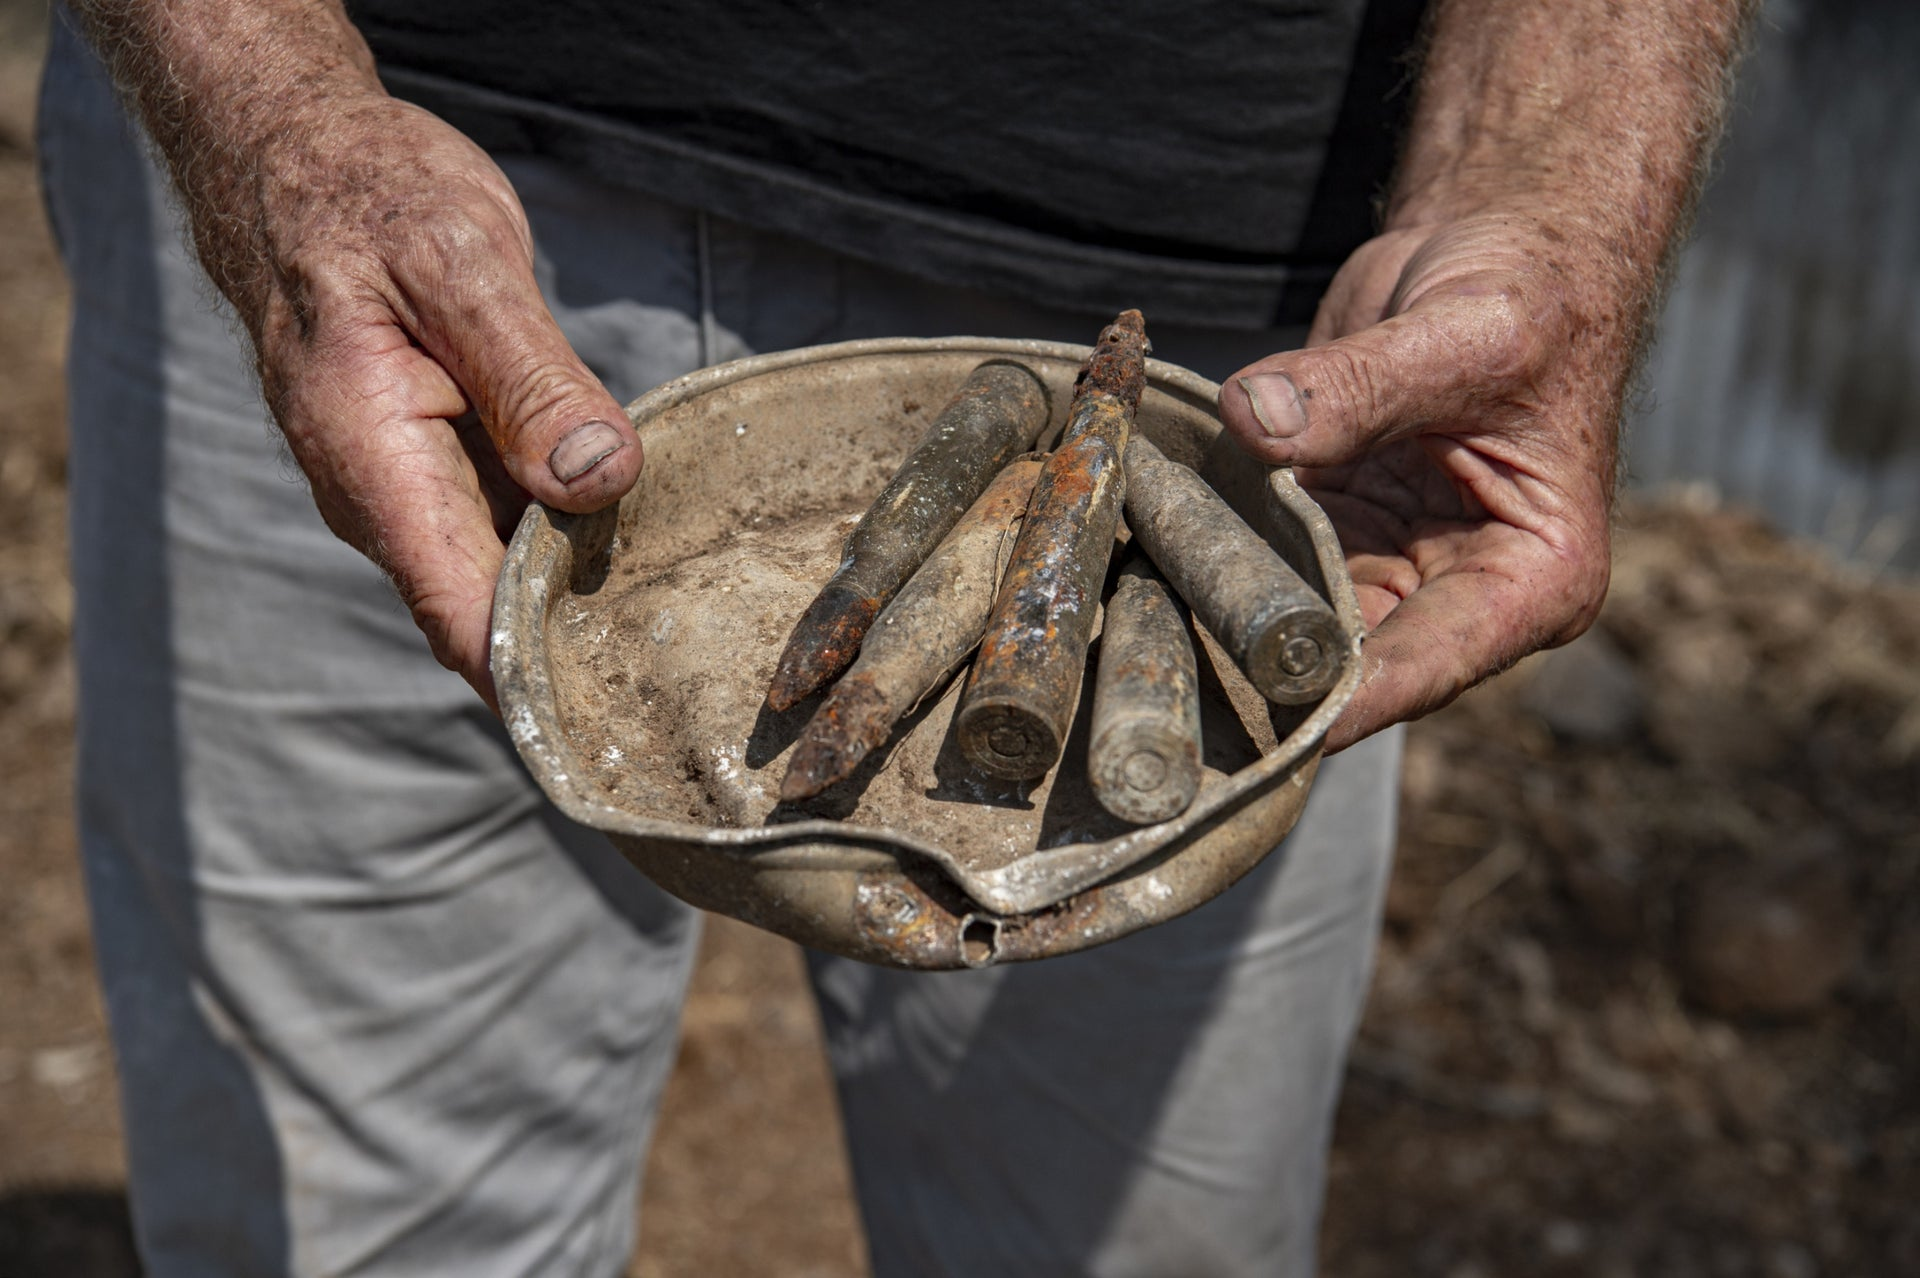 Leo Gleser holding a collection of munitions found at the site. The plan is to open a museum space at the hotel to showcase all of the findings.